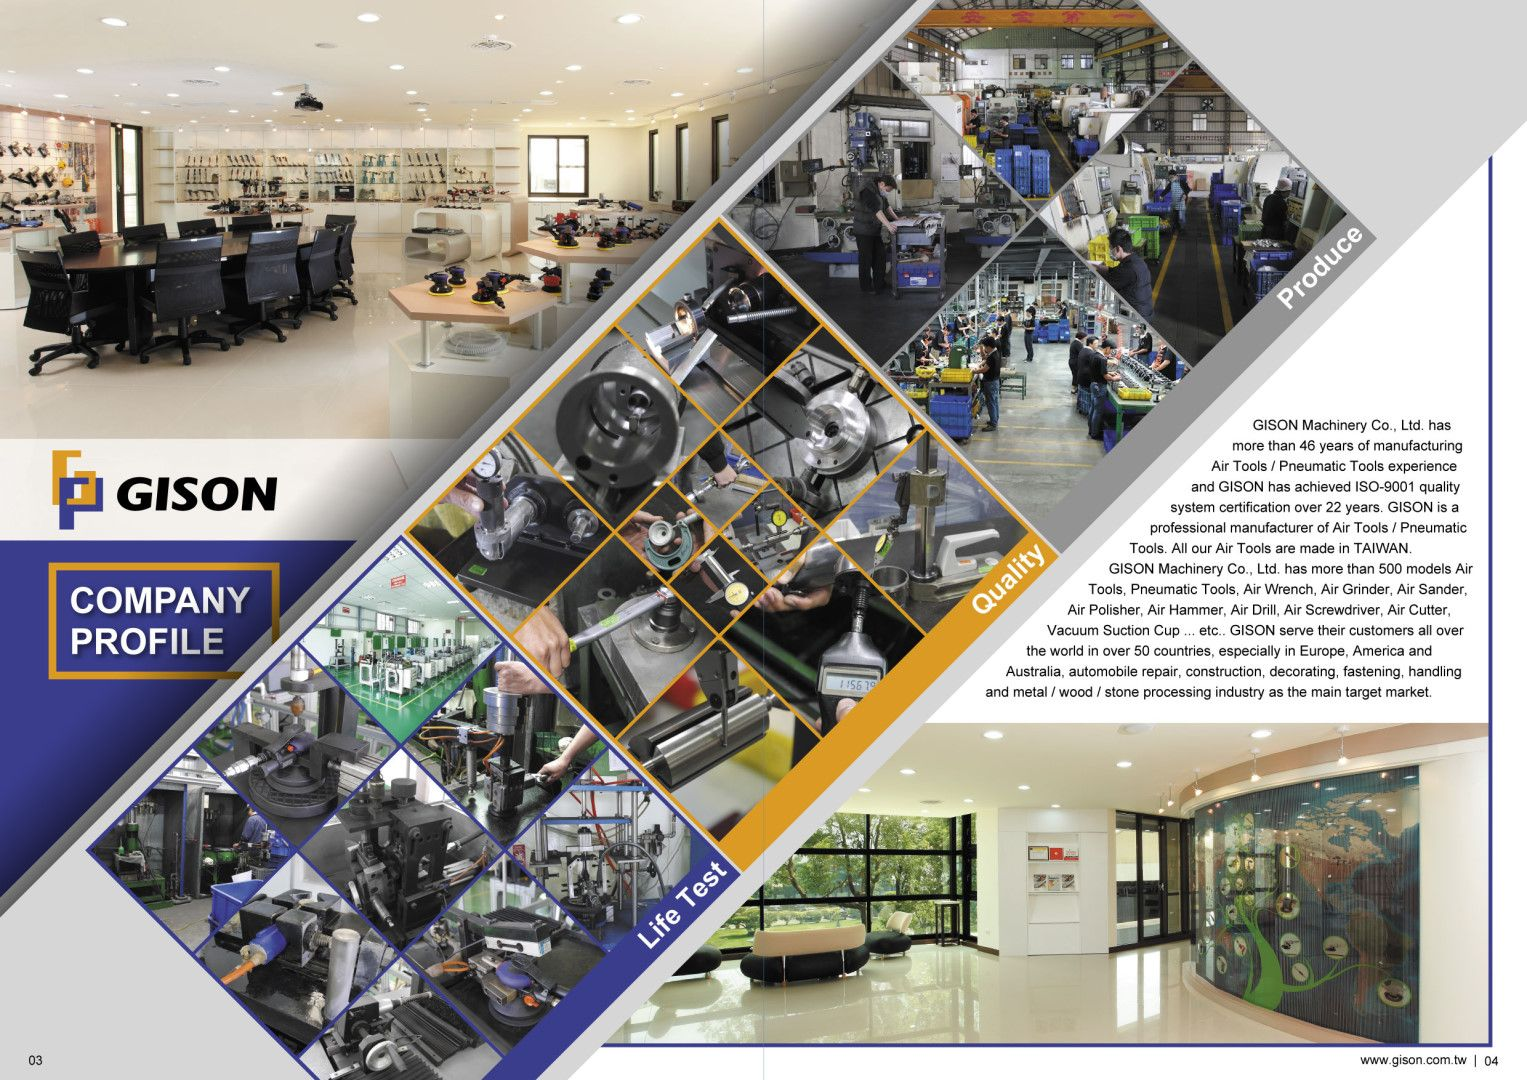 GISON's Company Profile | Air Tools